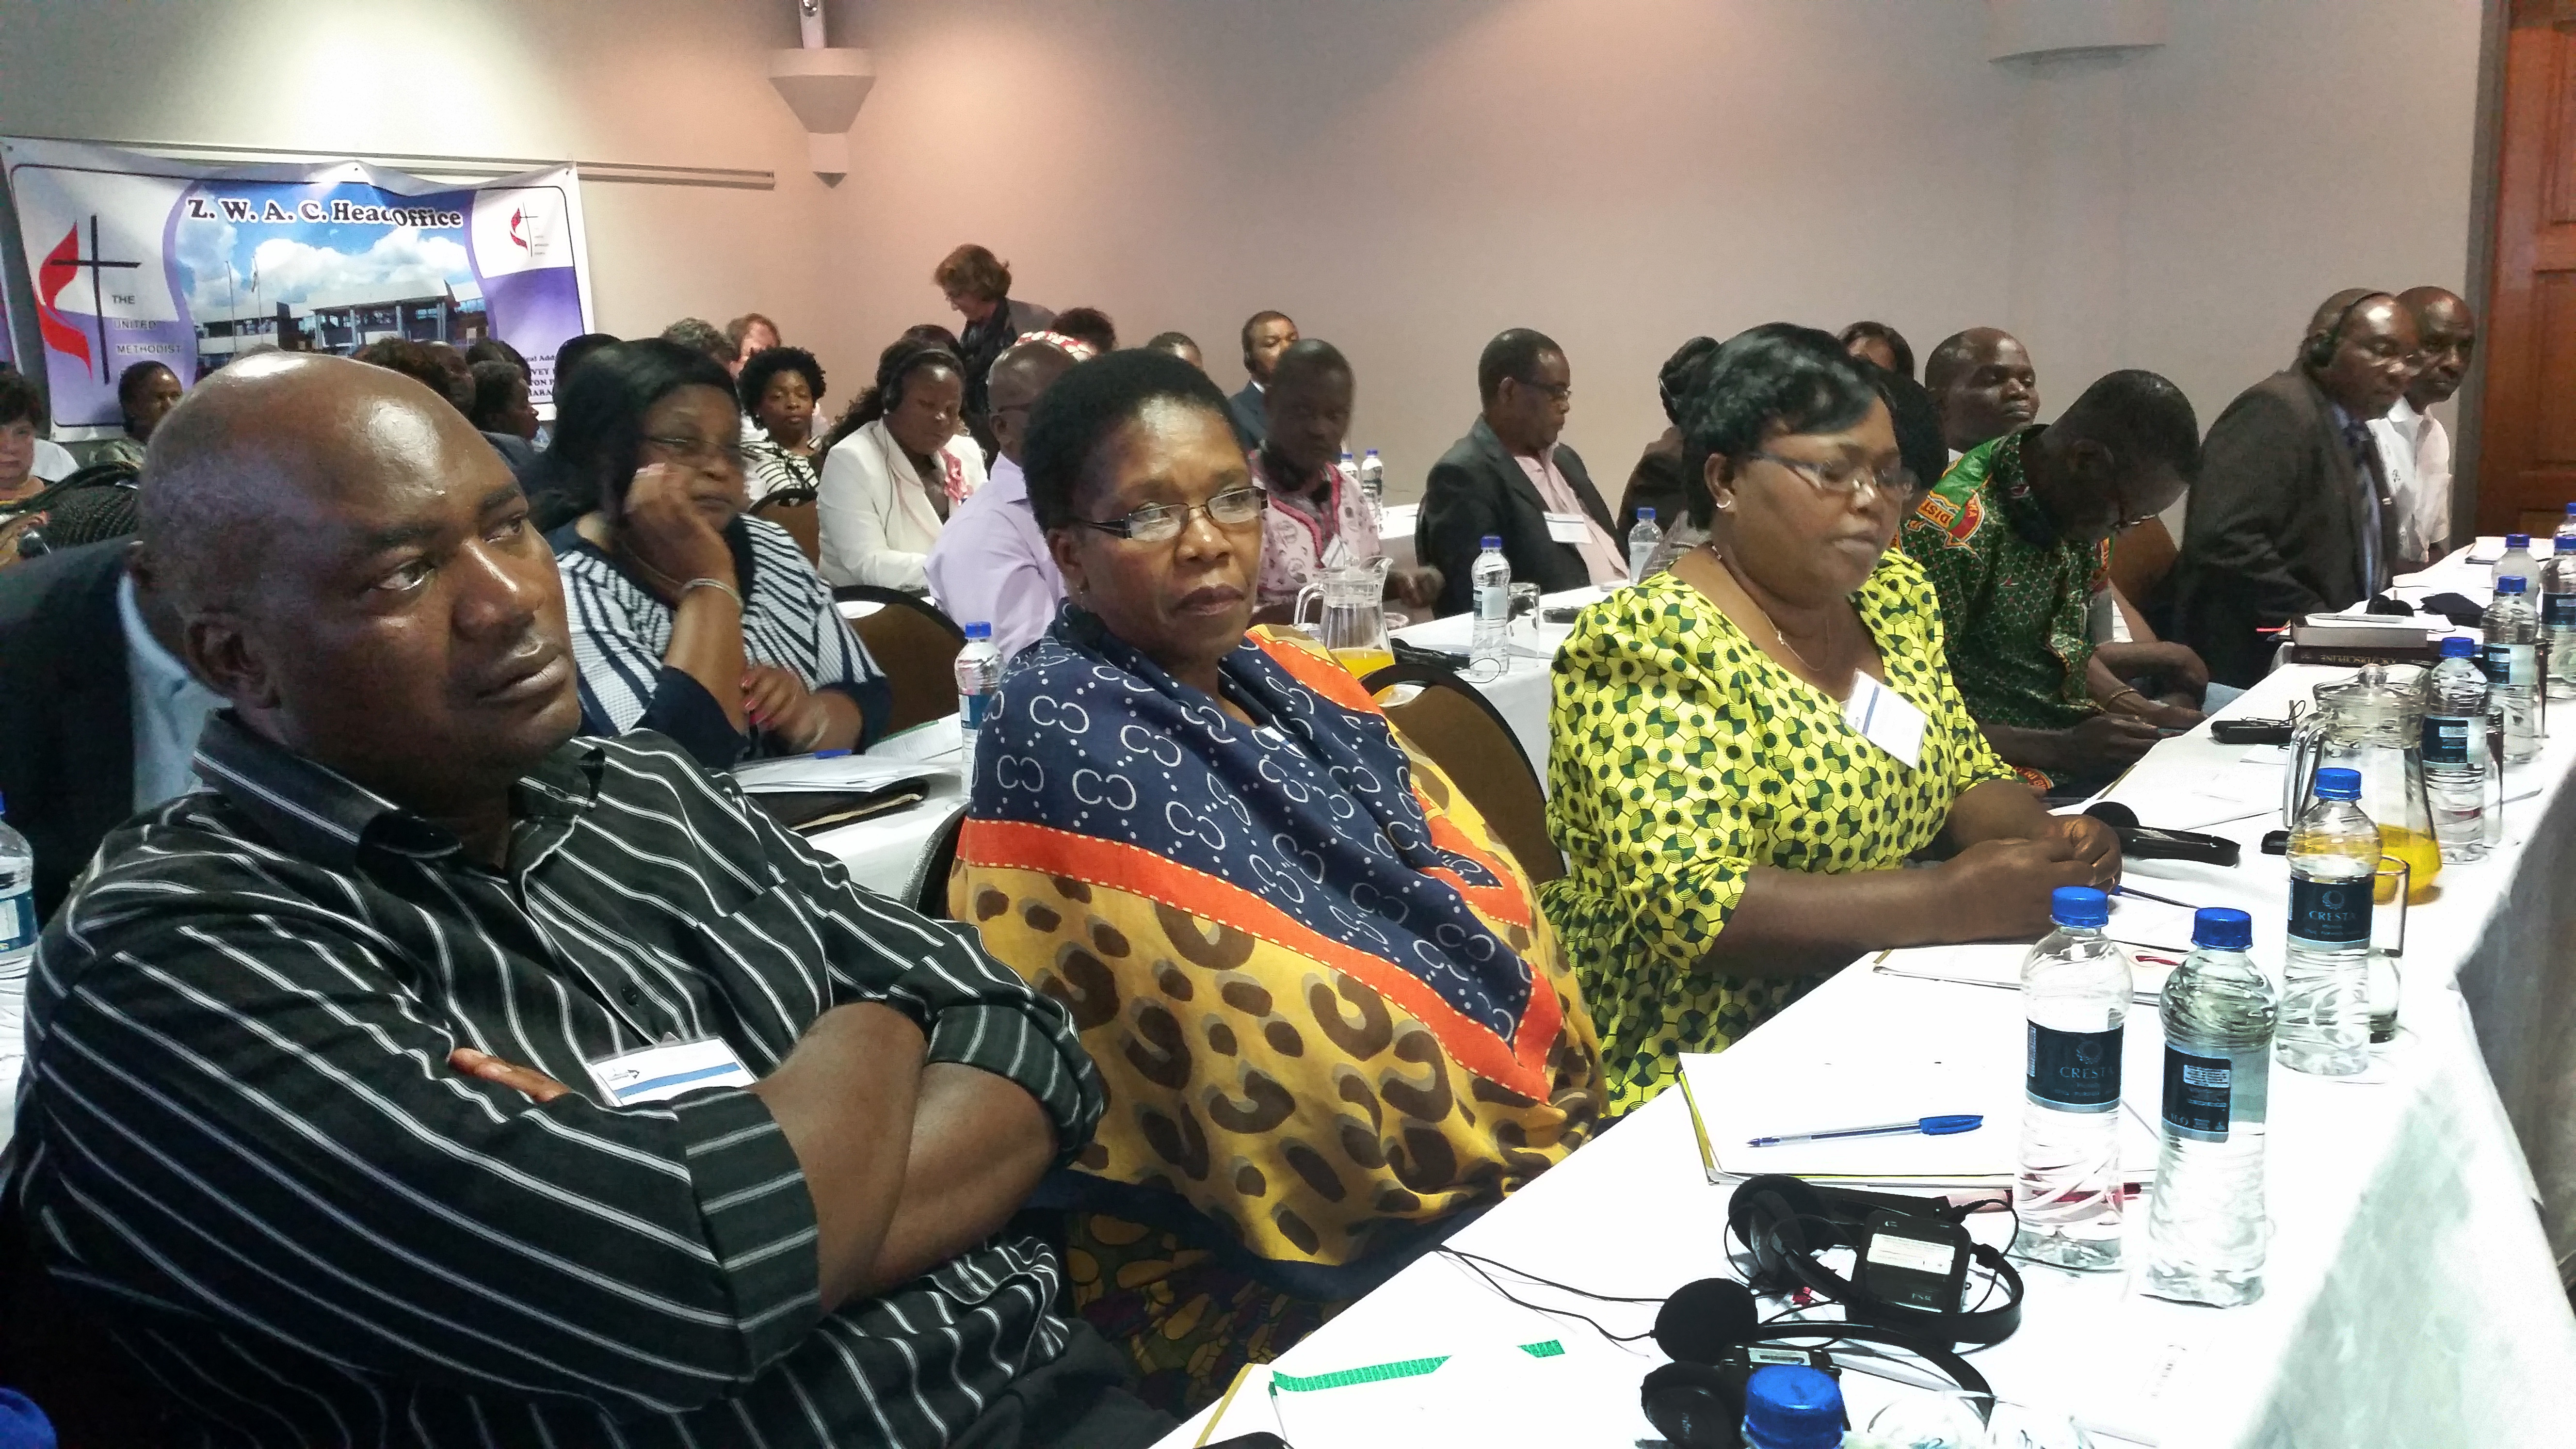 The Rev. Forbes Matonga, Betty Katiyo and the Rev. Annie Grace Chingonzo participate in the 2016 pre-General Conference orientation for Africa Central Conference heads of delegations. Chingonzo remains chair of the Zimbabwe East Conference delegation and says it favors the Traditional Plan, one of the main legislative options to be considered at the 2019 special called session of General Conference. File photo by Eveline Chikwanah, UMNS.